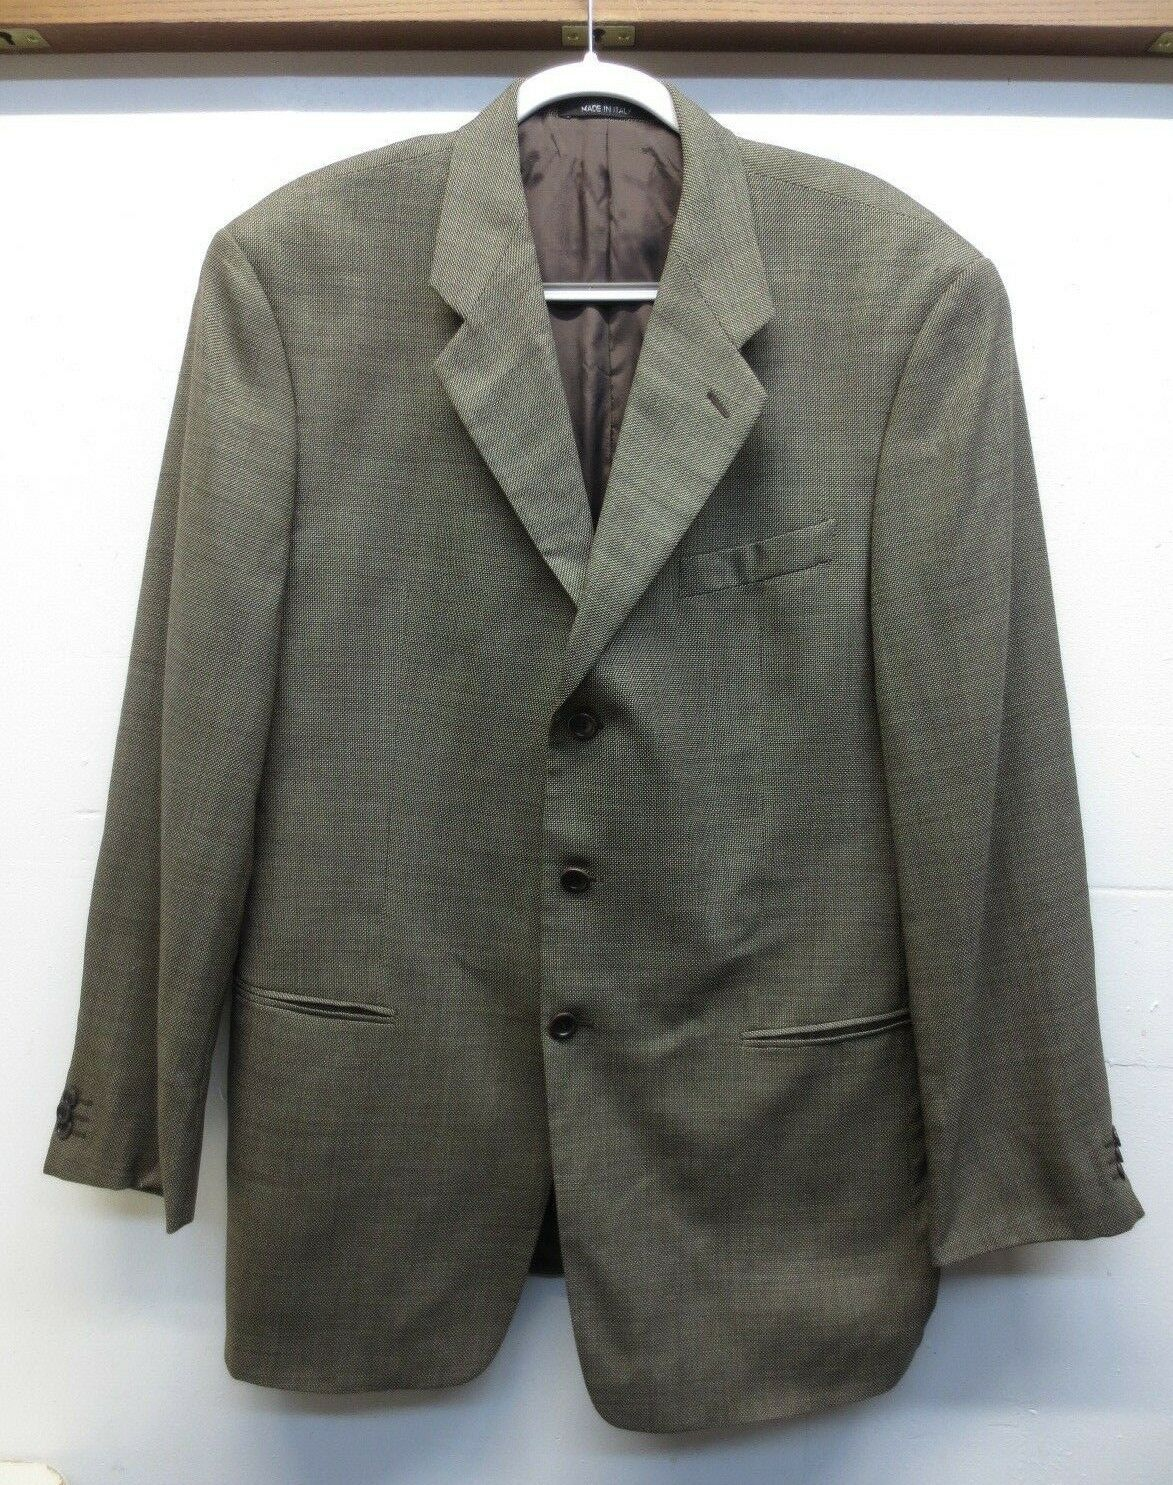 EUC Armani Collezioni Sport Coat Brown Beige Wool Silk 3 Button 0 Vent Size 44L